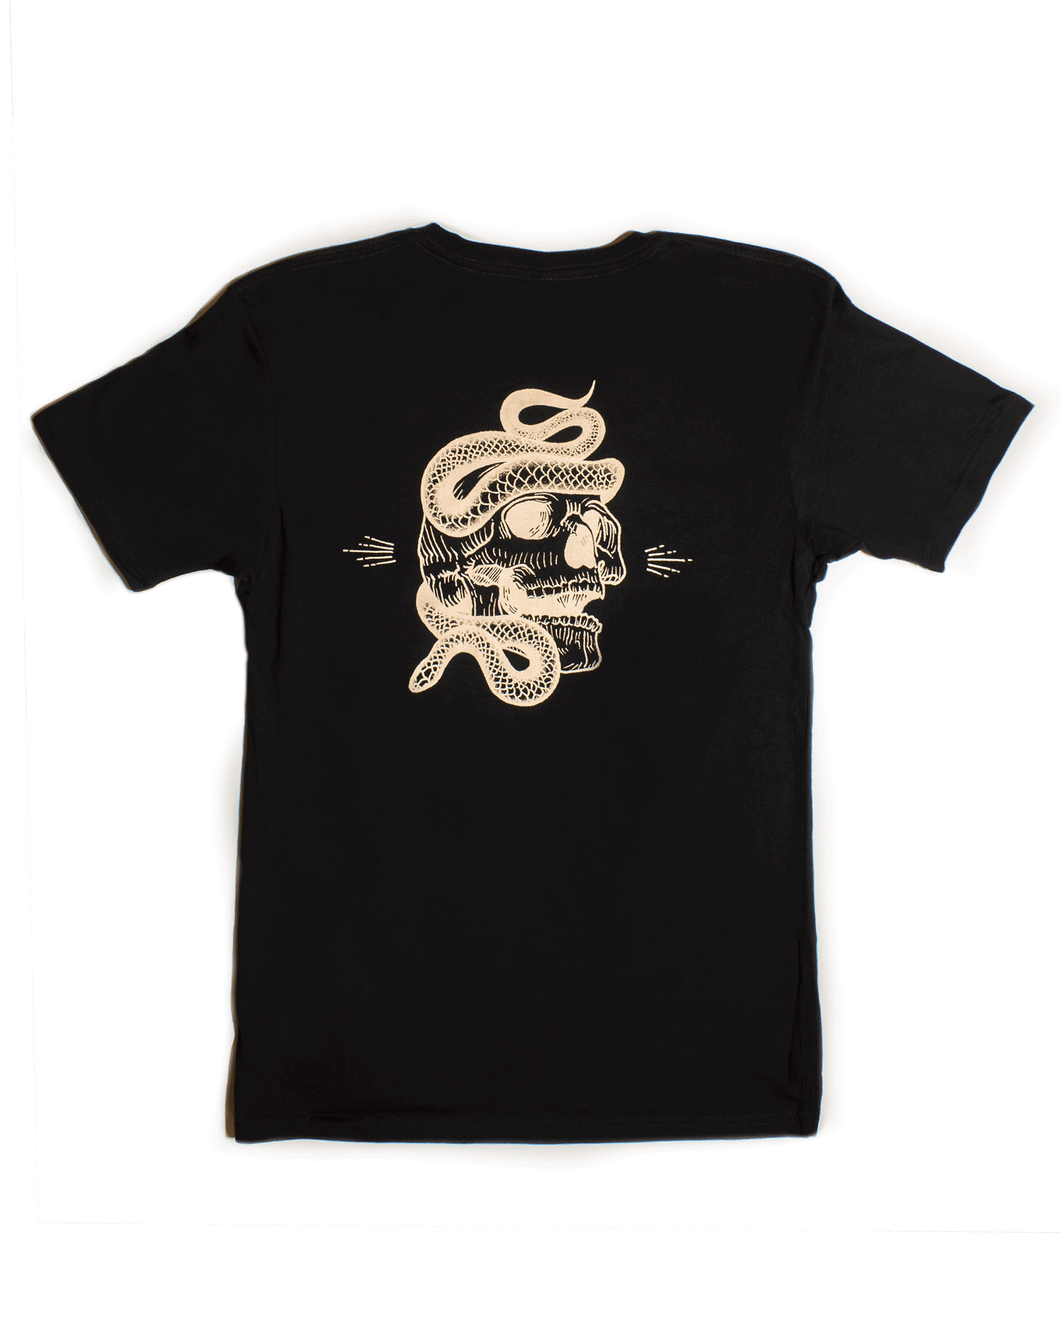 Vantablack Limited - Skull Tee (Black) - SOLD OUT - Dirty Store